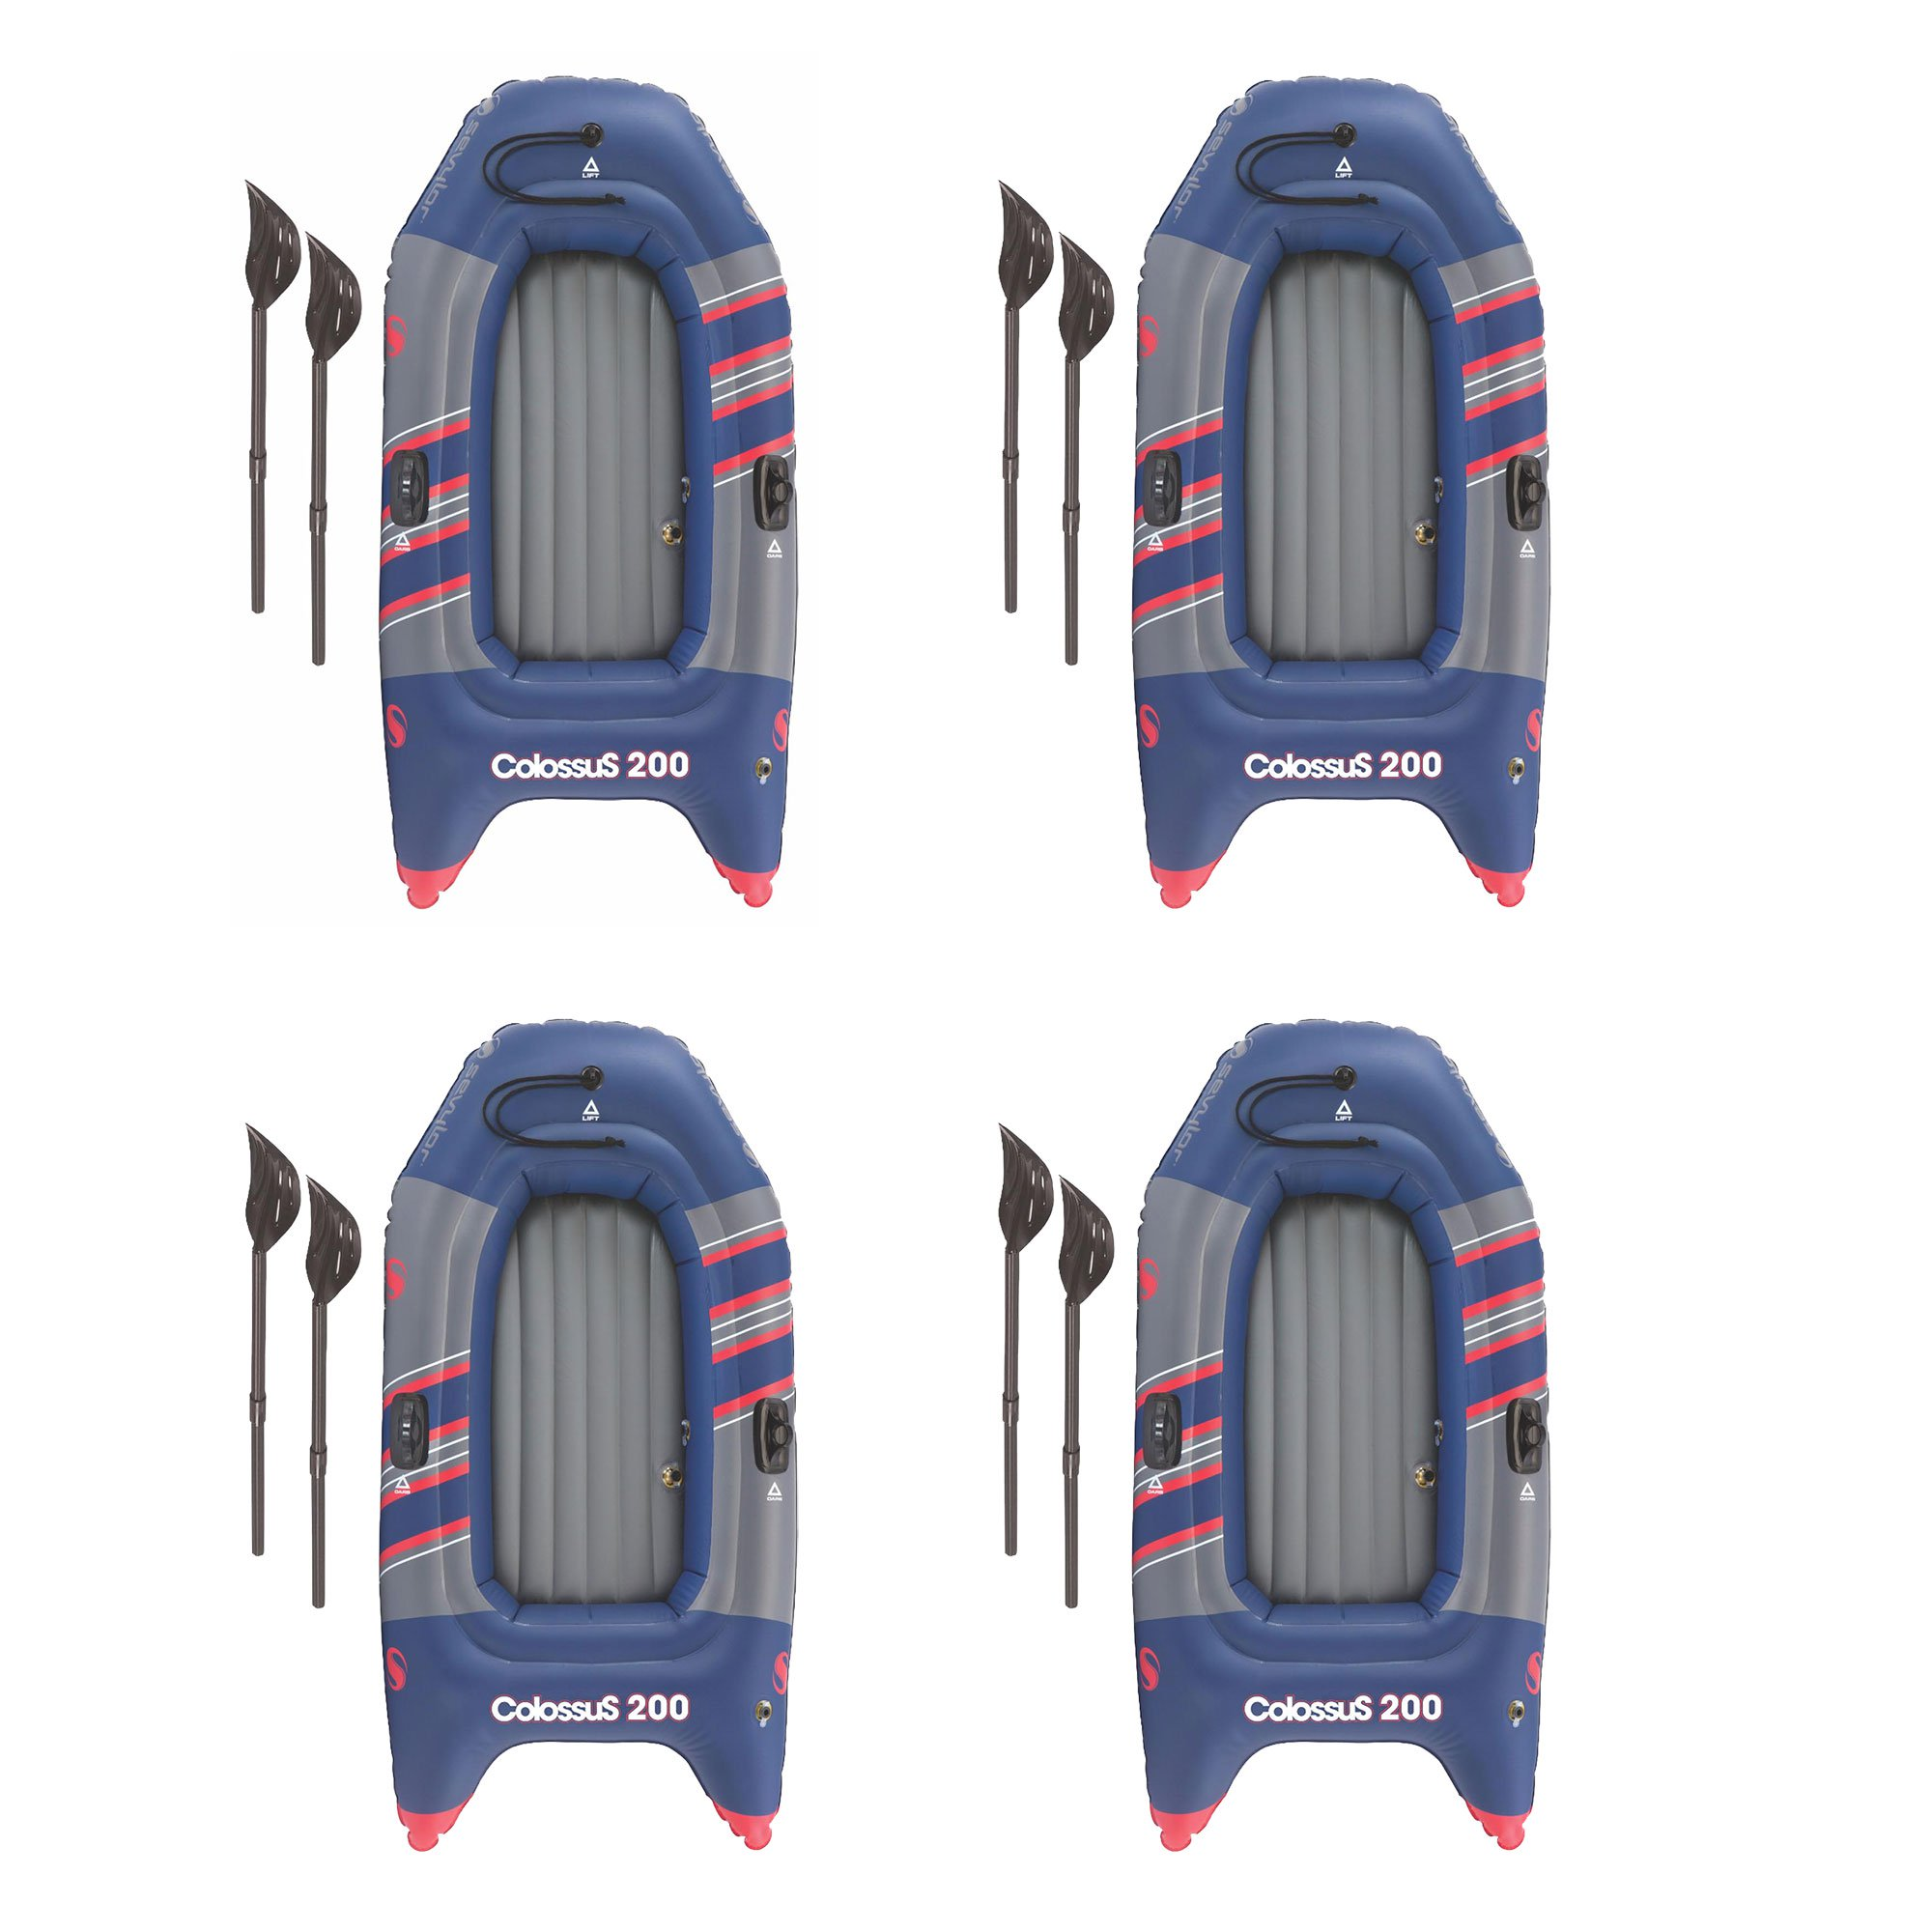 SEVYLOR Colossus 2 Person Inflatable 14 Guage PVC Boat Raft w/ Oars (4 Pack)